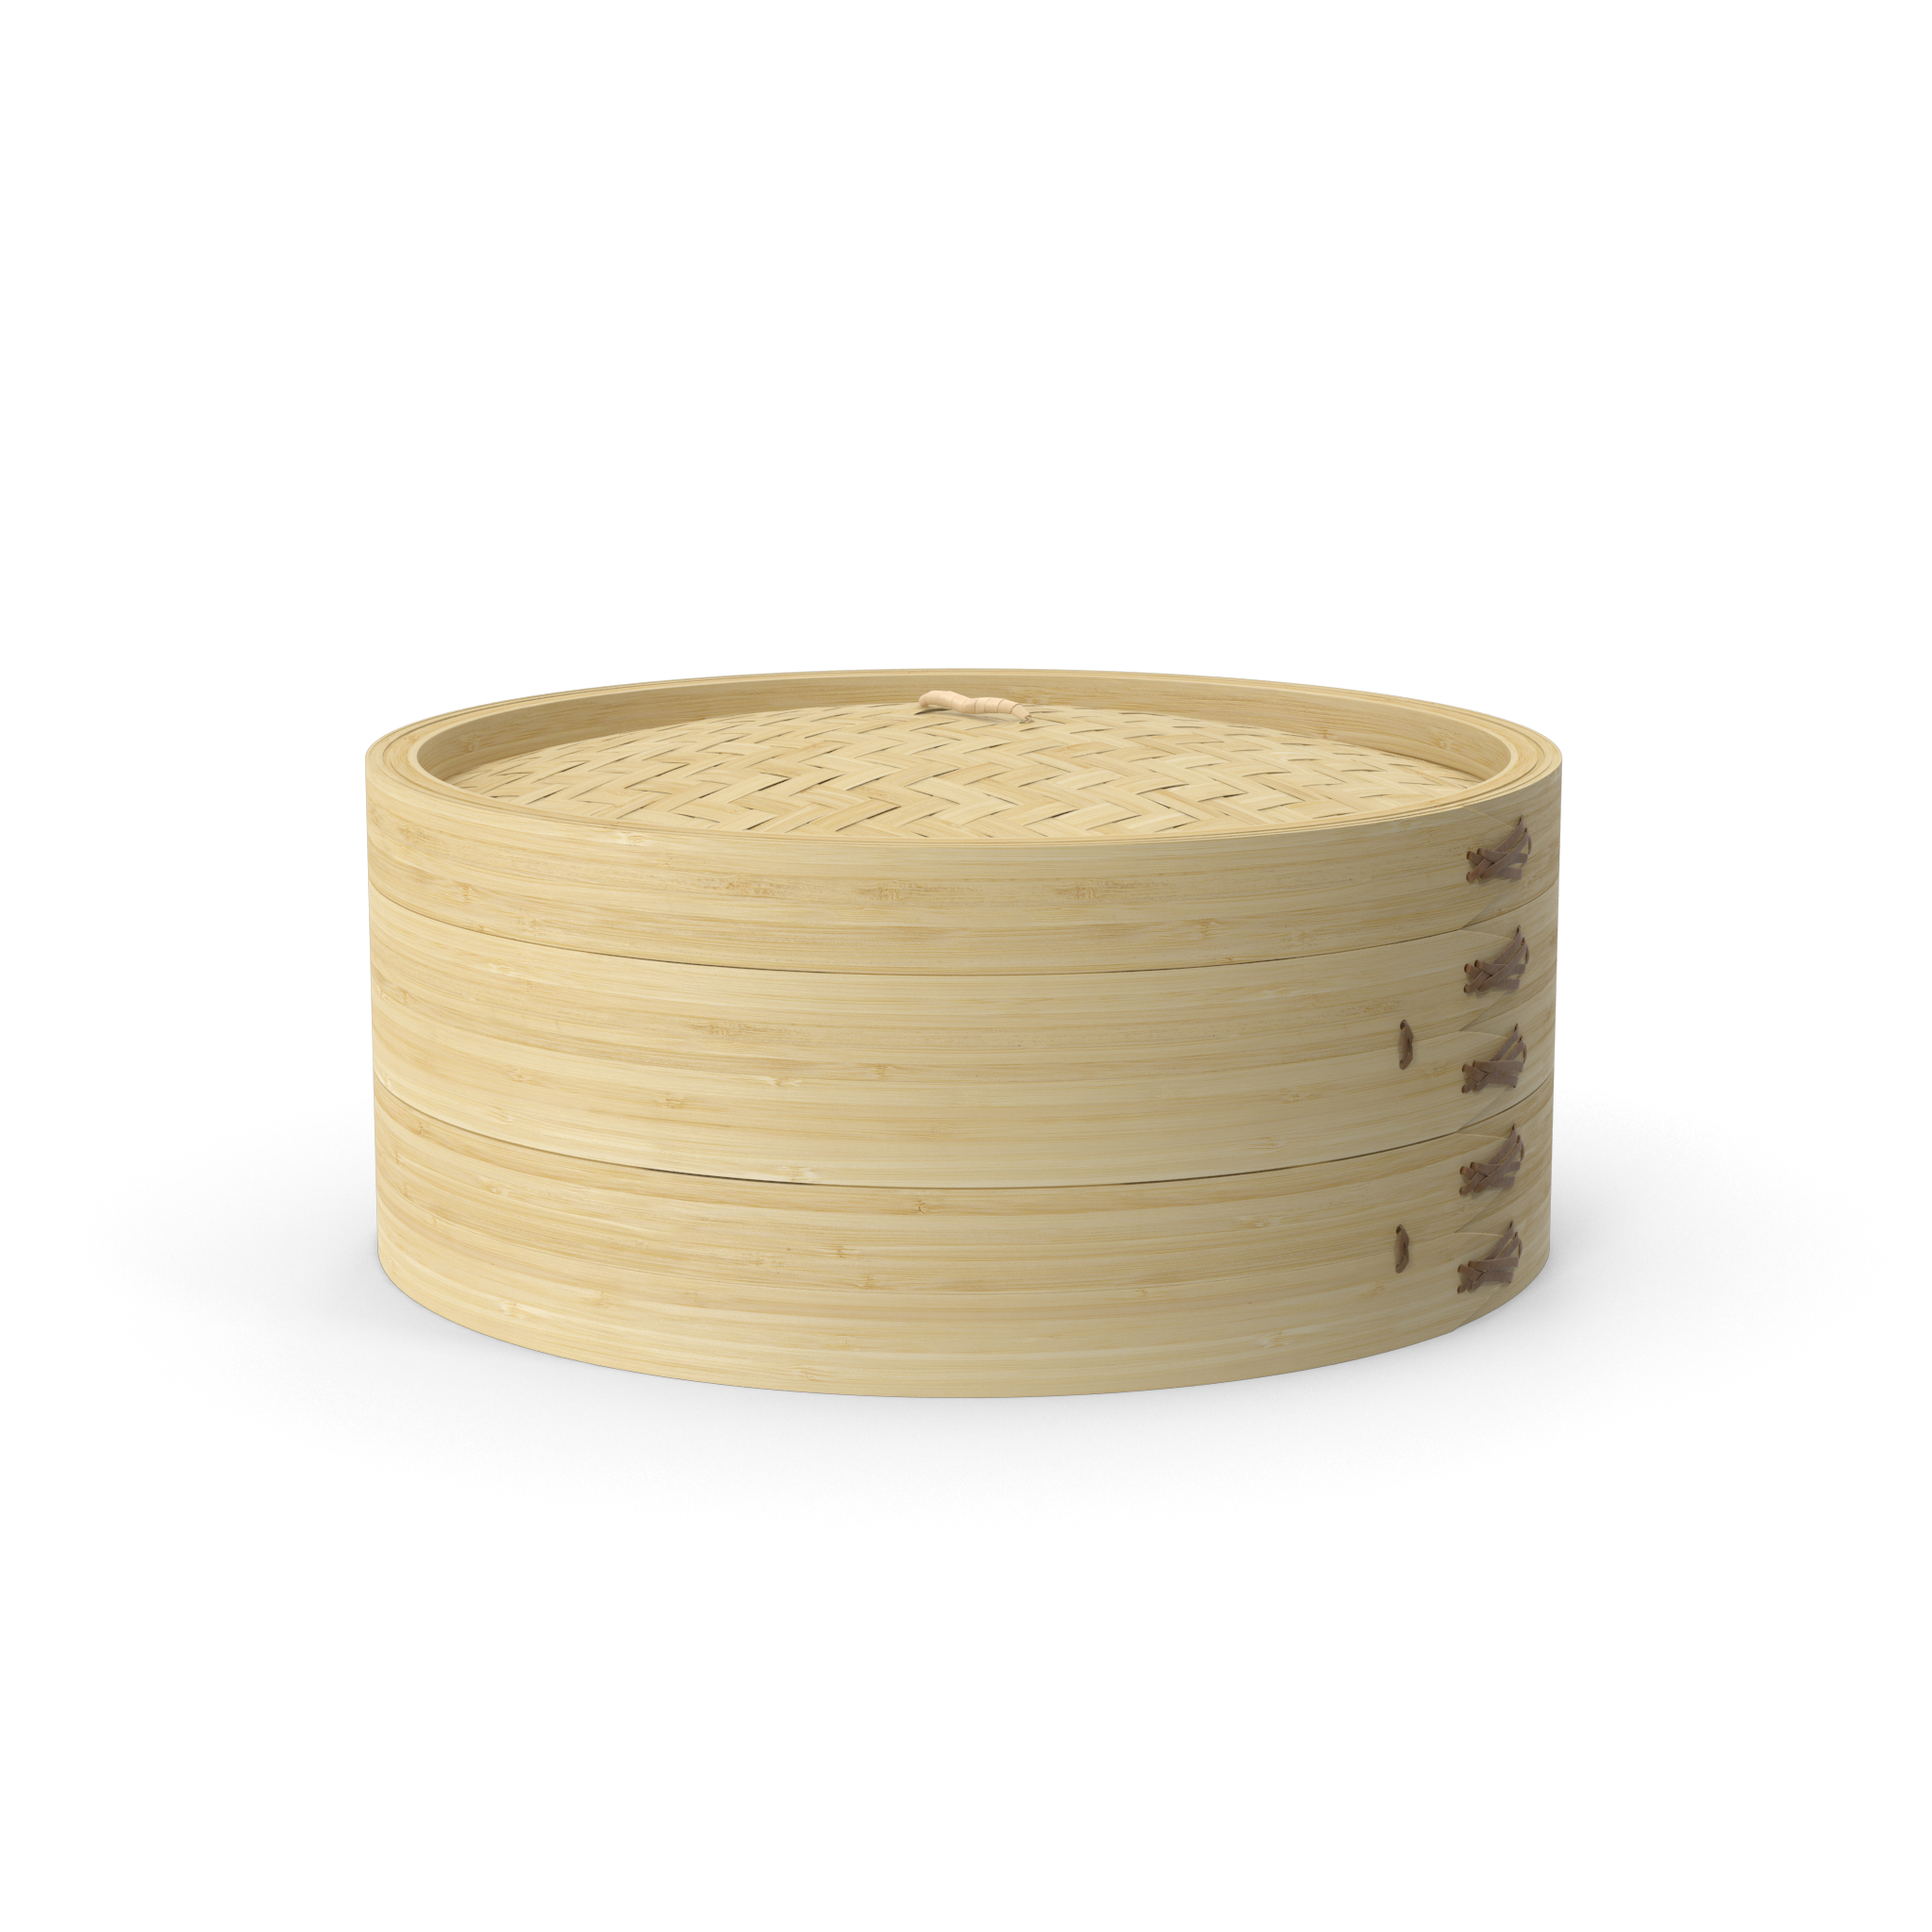 Bamboo Steamer.H03.2k.png